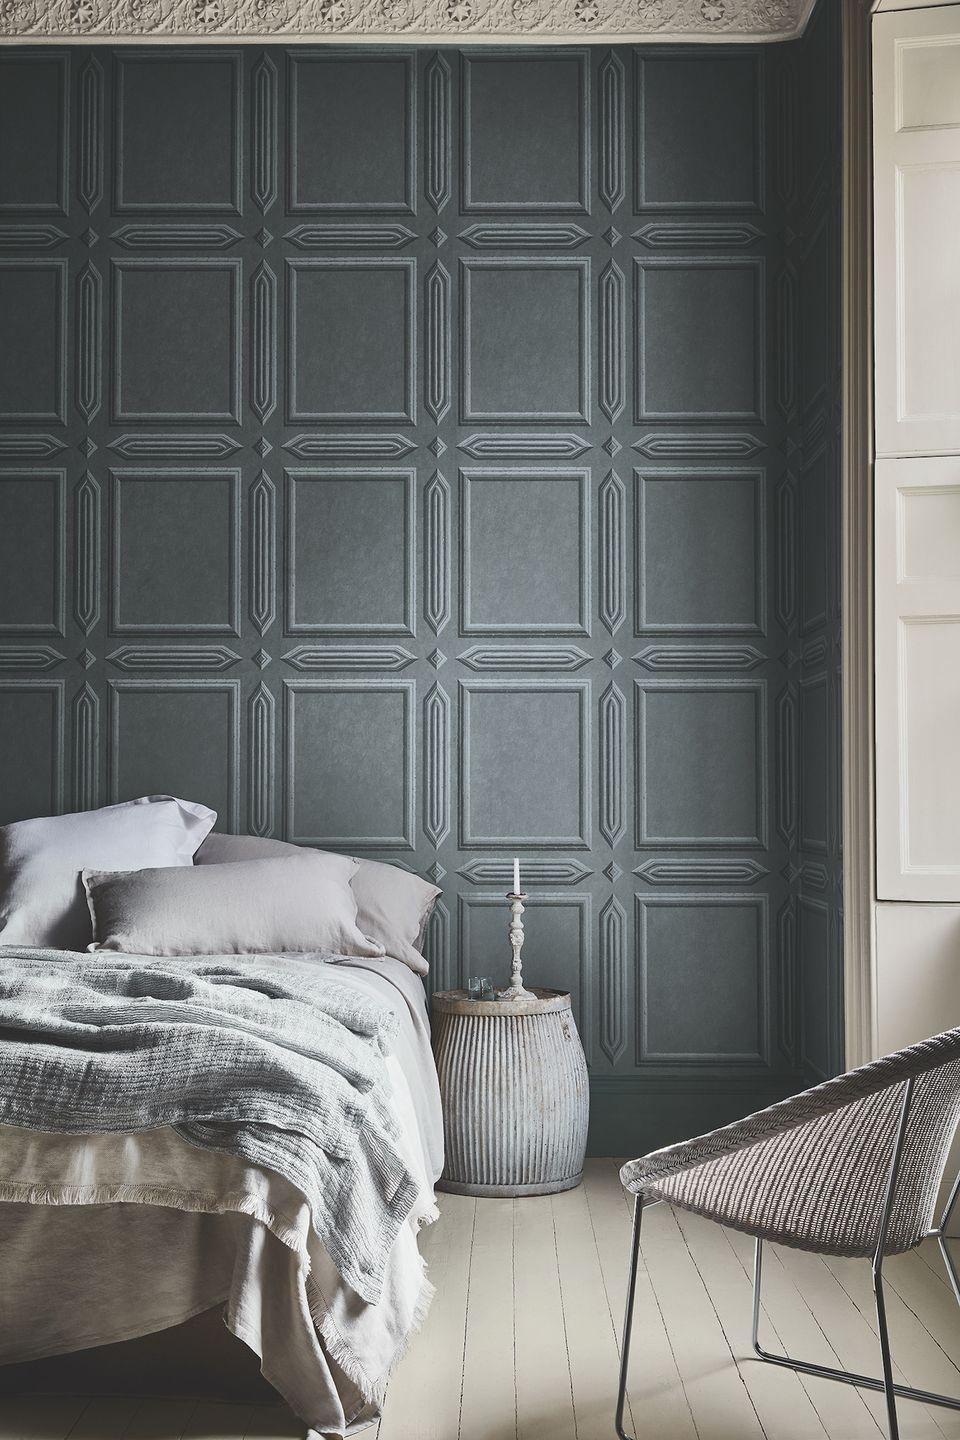 """<p>Wall panelling is trending right now and adds an interesting element to a room, giving character to plain walls. If you don't have panelling, fake it with wallpaper like this lovely design.</p><p>Pictured: Old Gloucester Street – Tome, woodwork and floor both painted in French Grey mid 162, Intelligent Eggshell, Intelligent Floor Paint, all from <a href=""""https://www.littlegreene.com/"""" rel=""""nofollow noopener"""" target=""""_blank"""" data-ylk=""""slk:Little Greene"""" class=""""link rapid-noclick-resp"""">Little Greene</a></p>"""